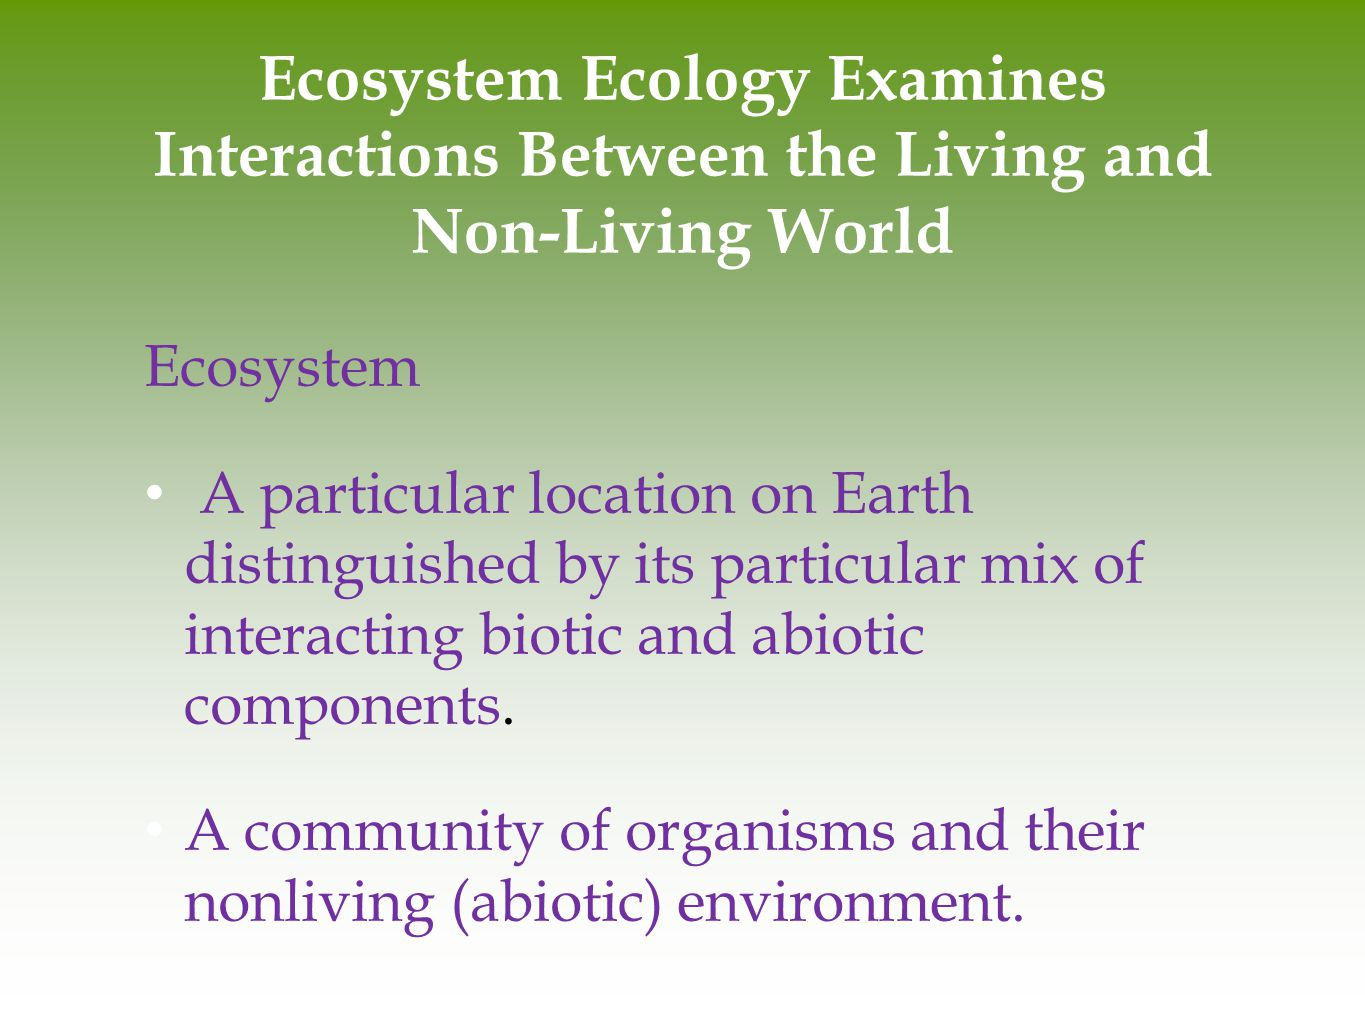 Ecosystem Ecology Examines Interactions Between the Living and Non-Living World Ecosystem A particular location on Earth distinguished by its particul